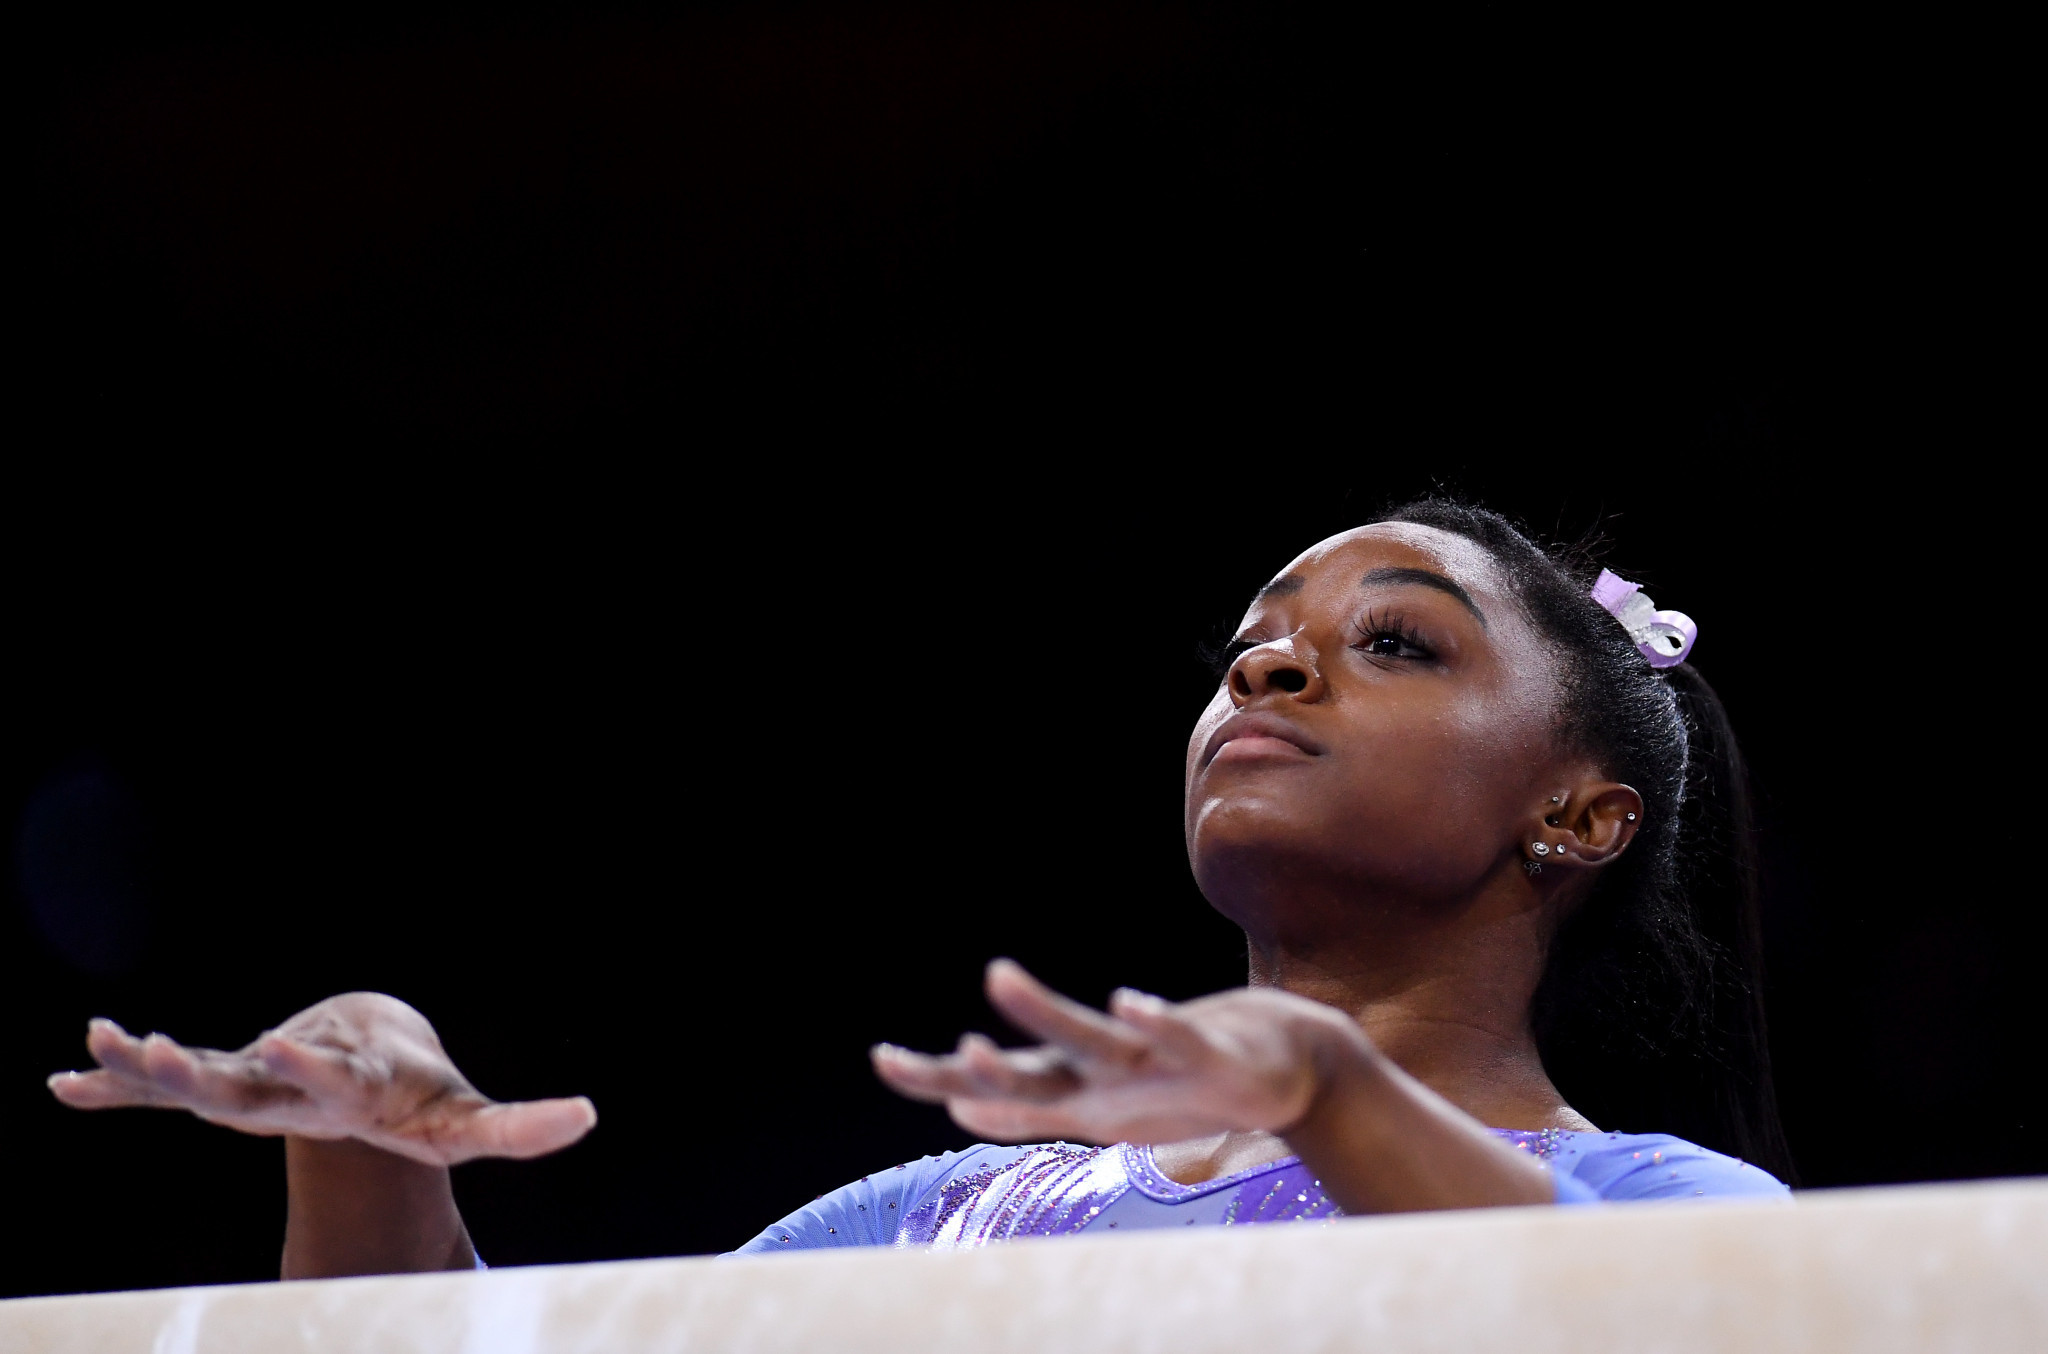 Simone Biles will hope to add to her four Olympic gold medals at Tokyo 2020 ©Getty Images